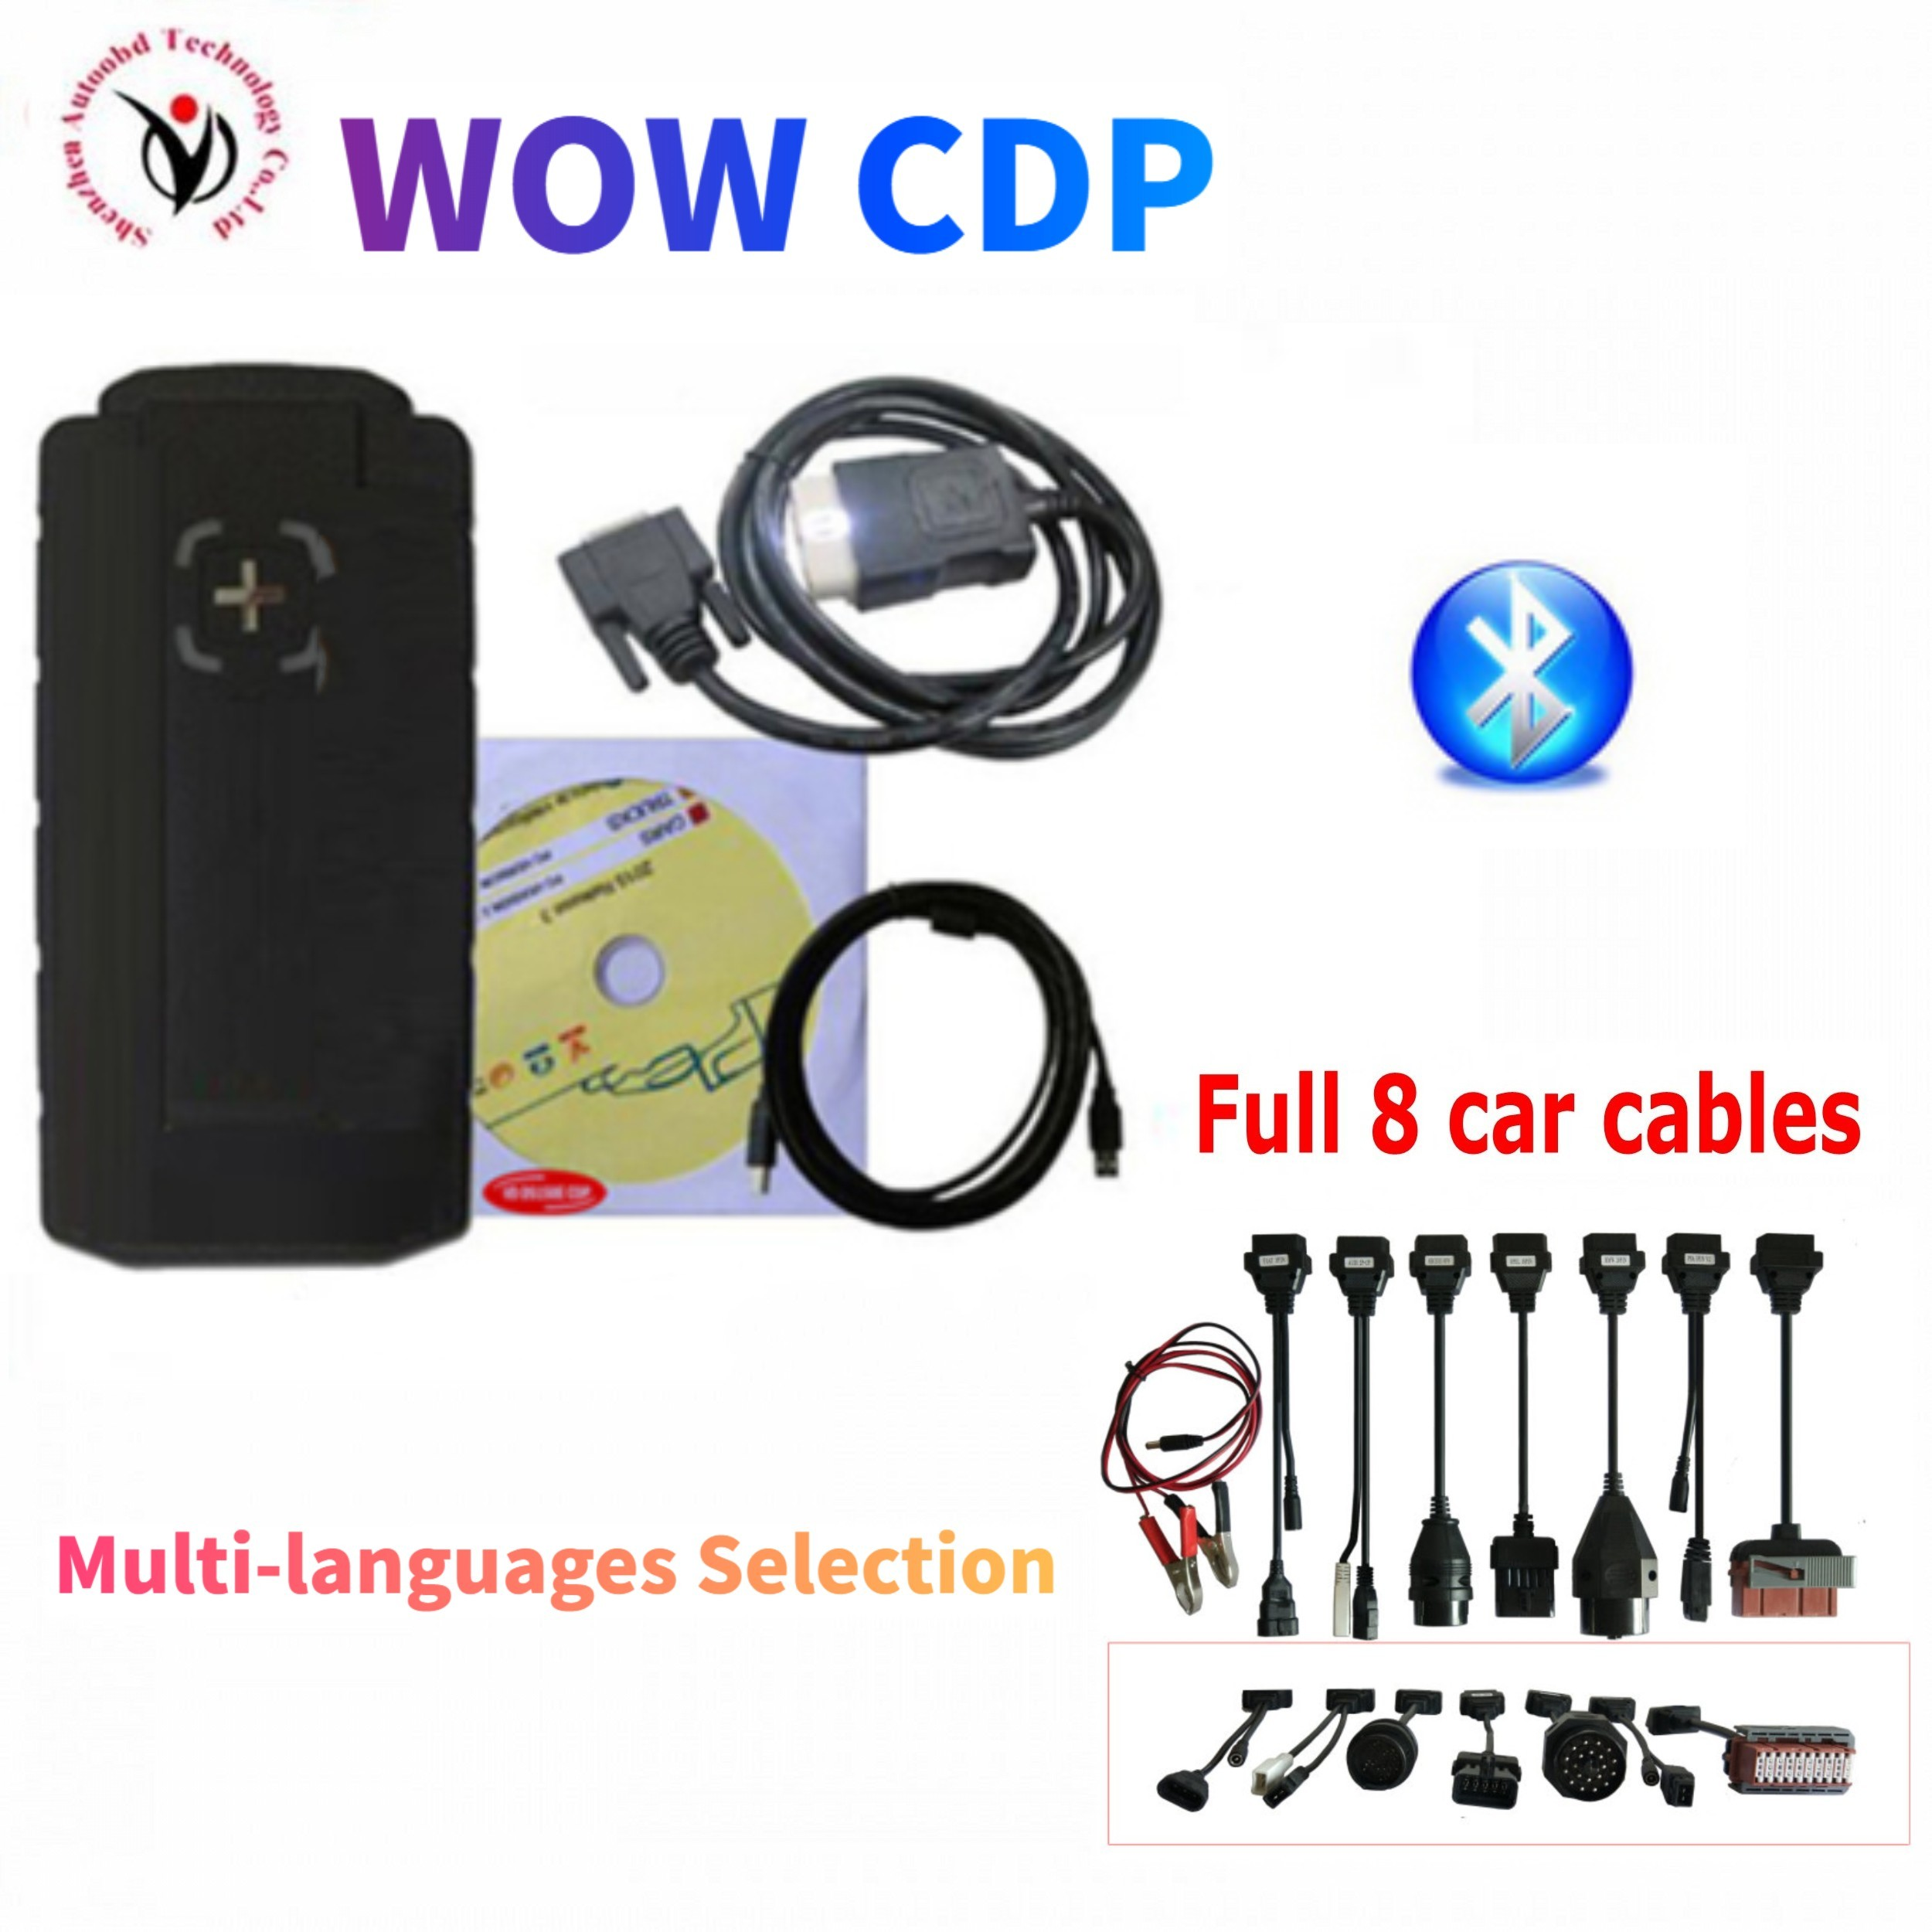 2020 Latest WOW CDP vd ds150e cdp pro plus with bluetooth v5 00812 2016 R0 keygen on cd for delphis obd2 car truck scanner tool